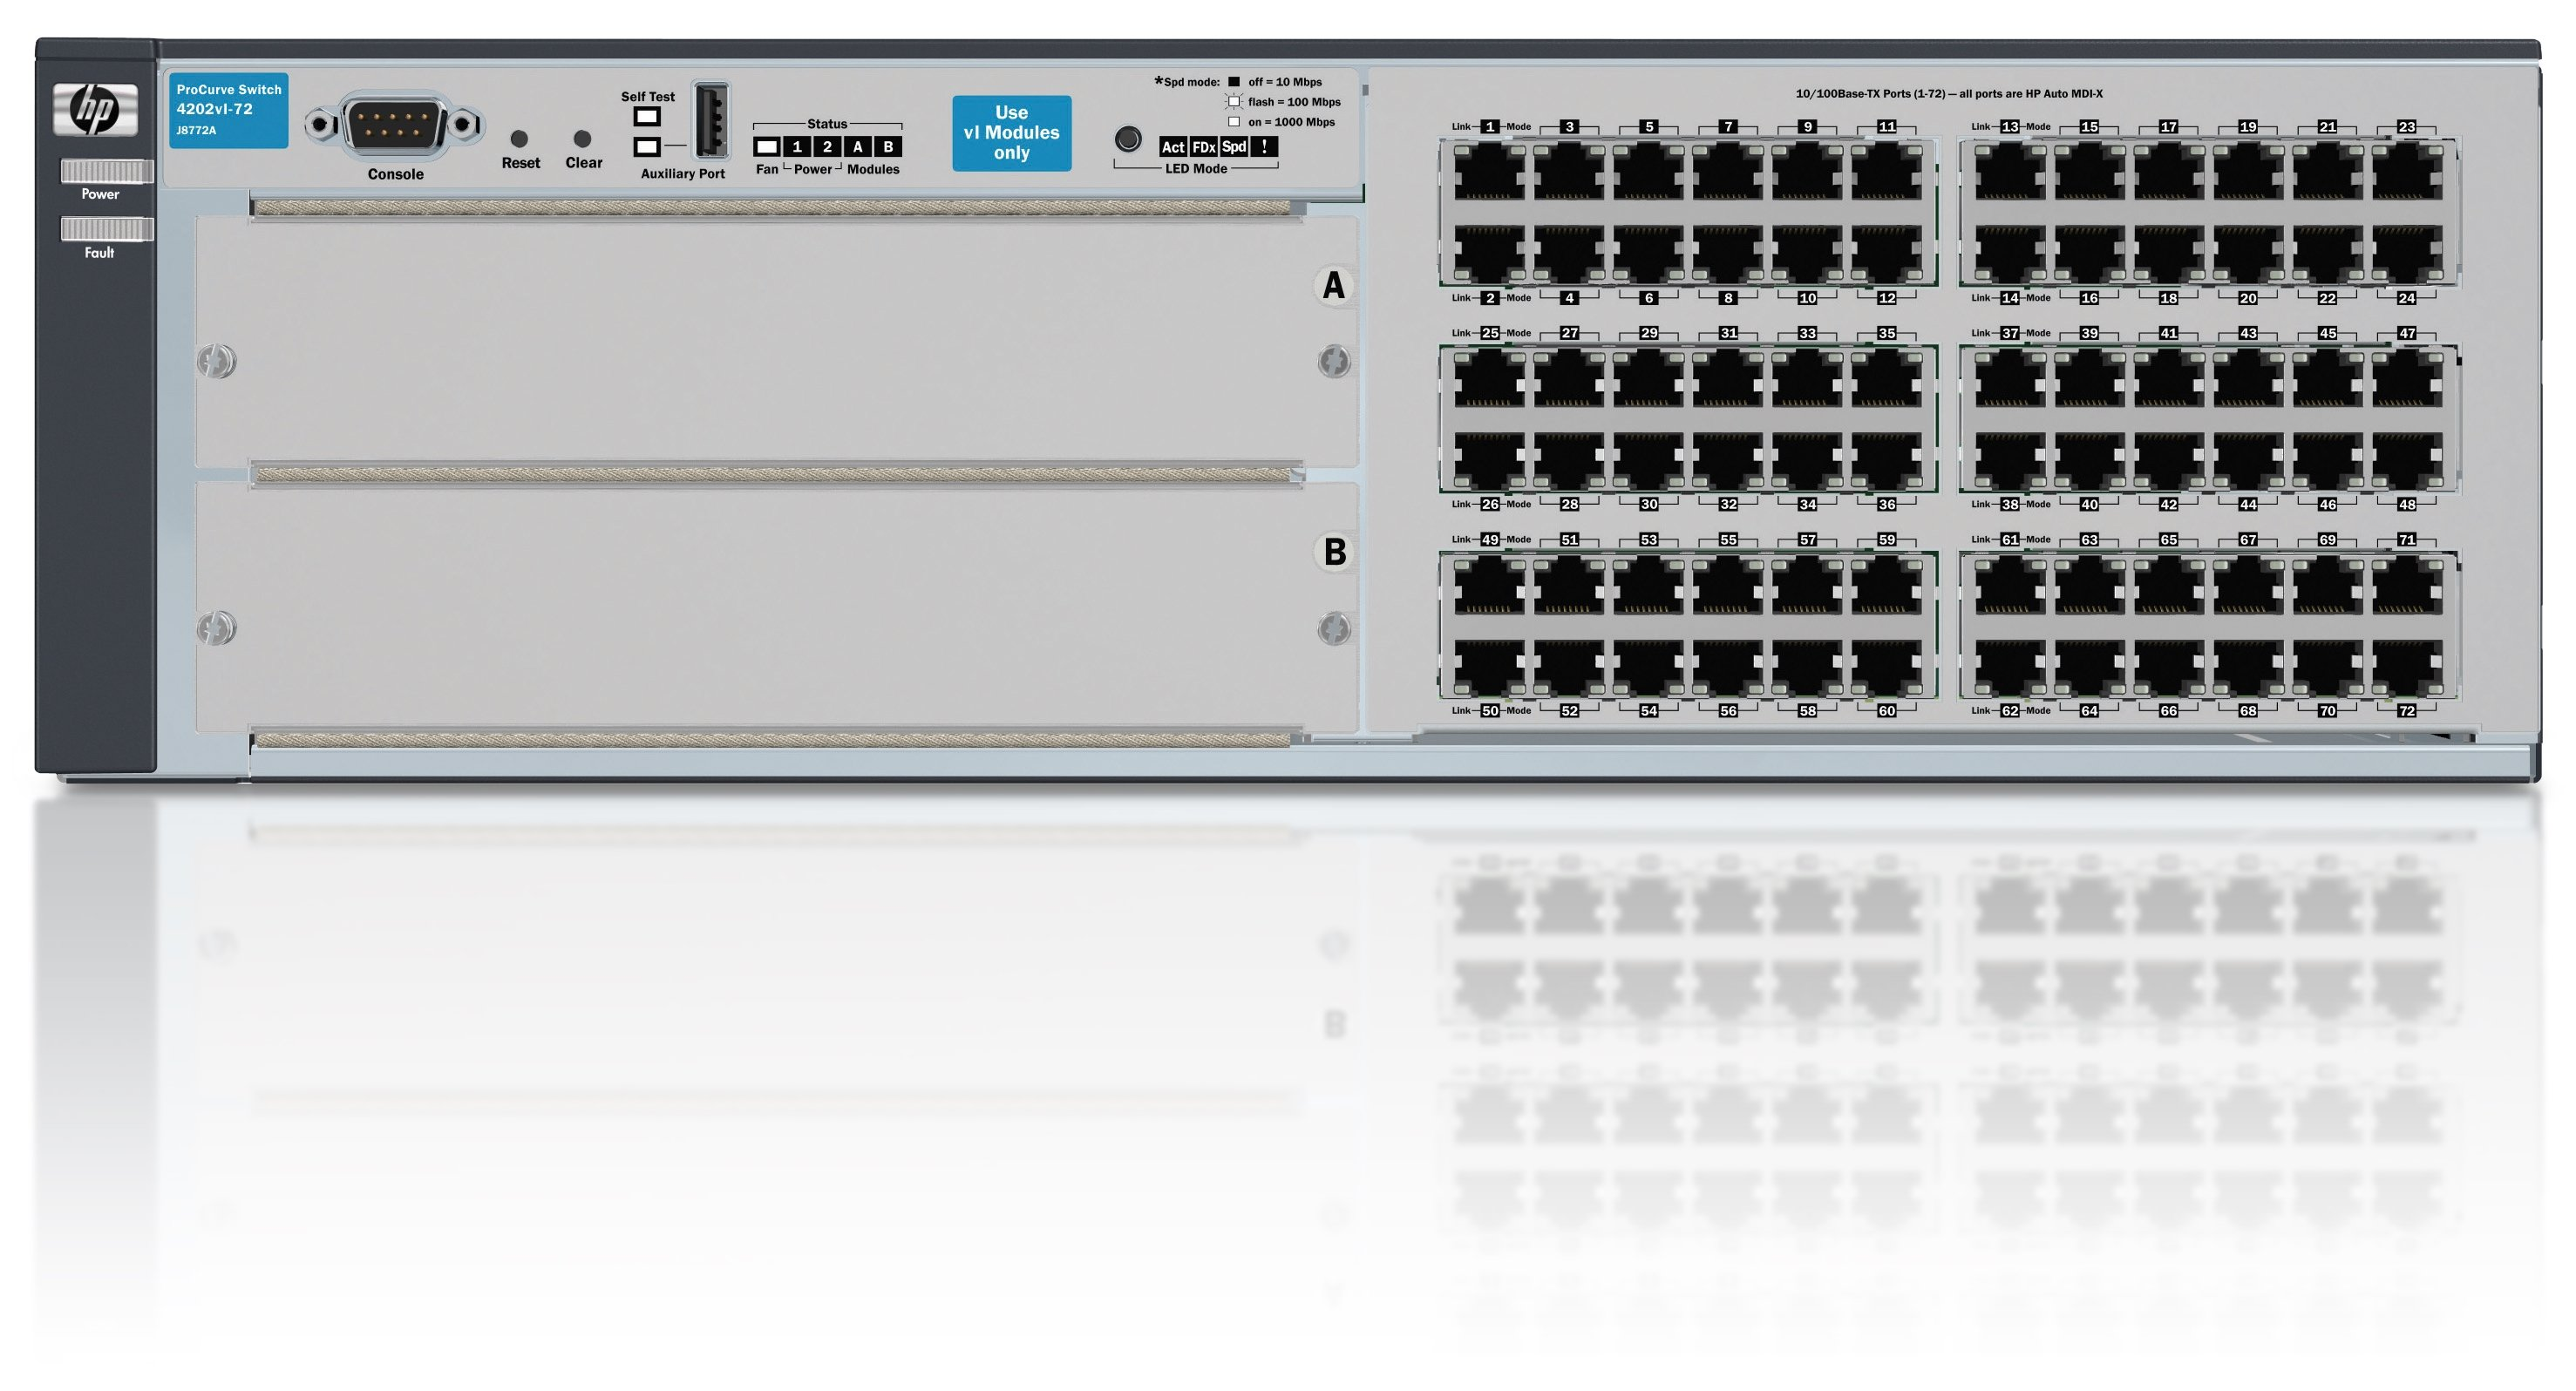 HPE 4202-72 vl Switchswitch - 72 ports - Managed - rack-mountable